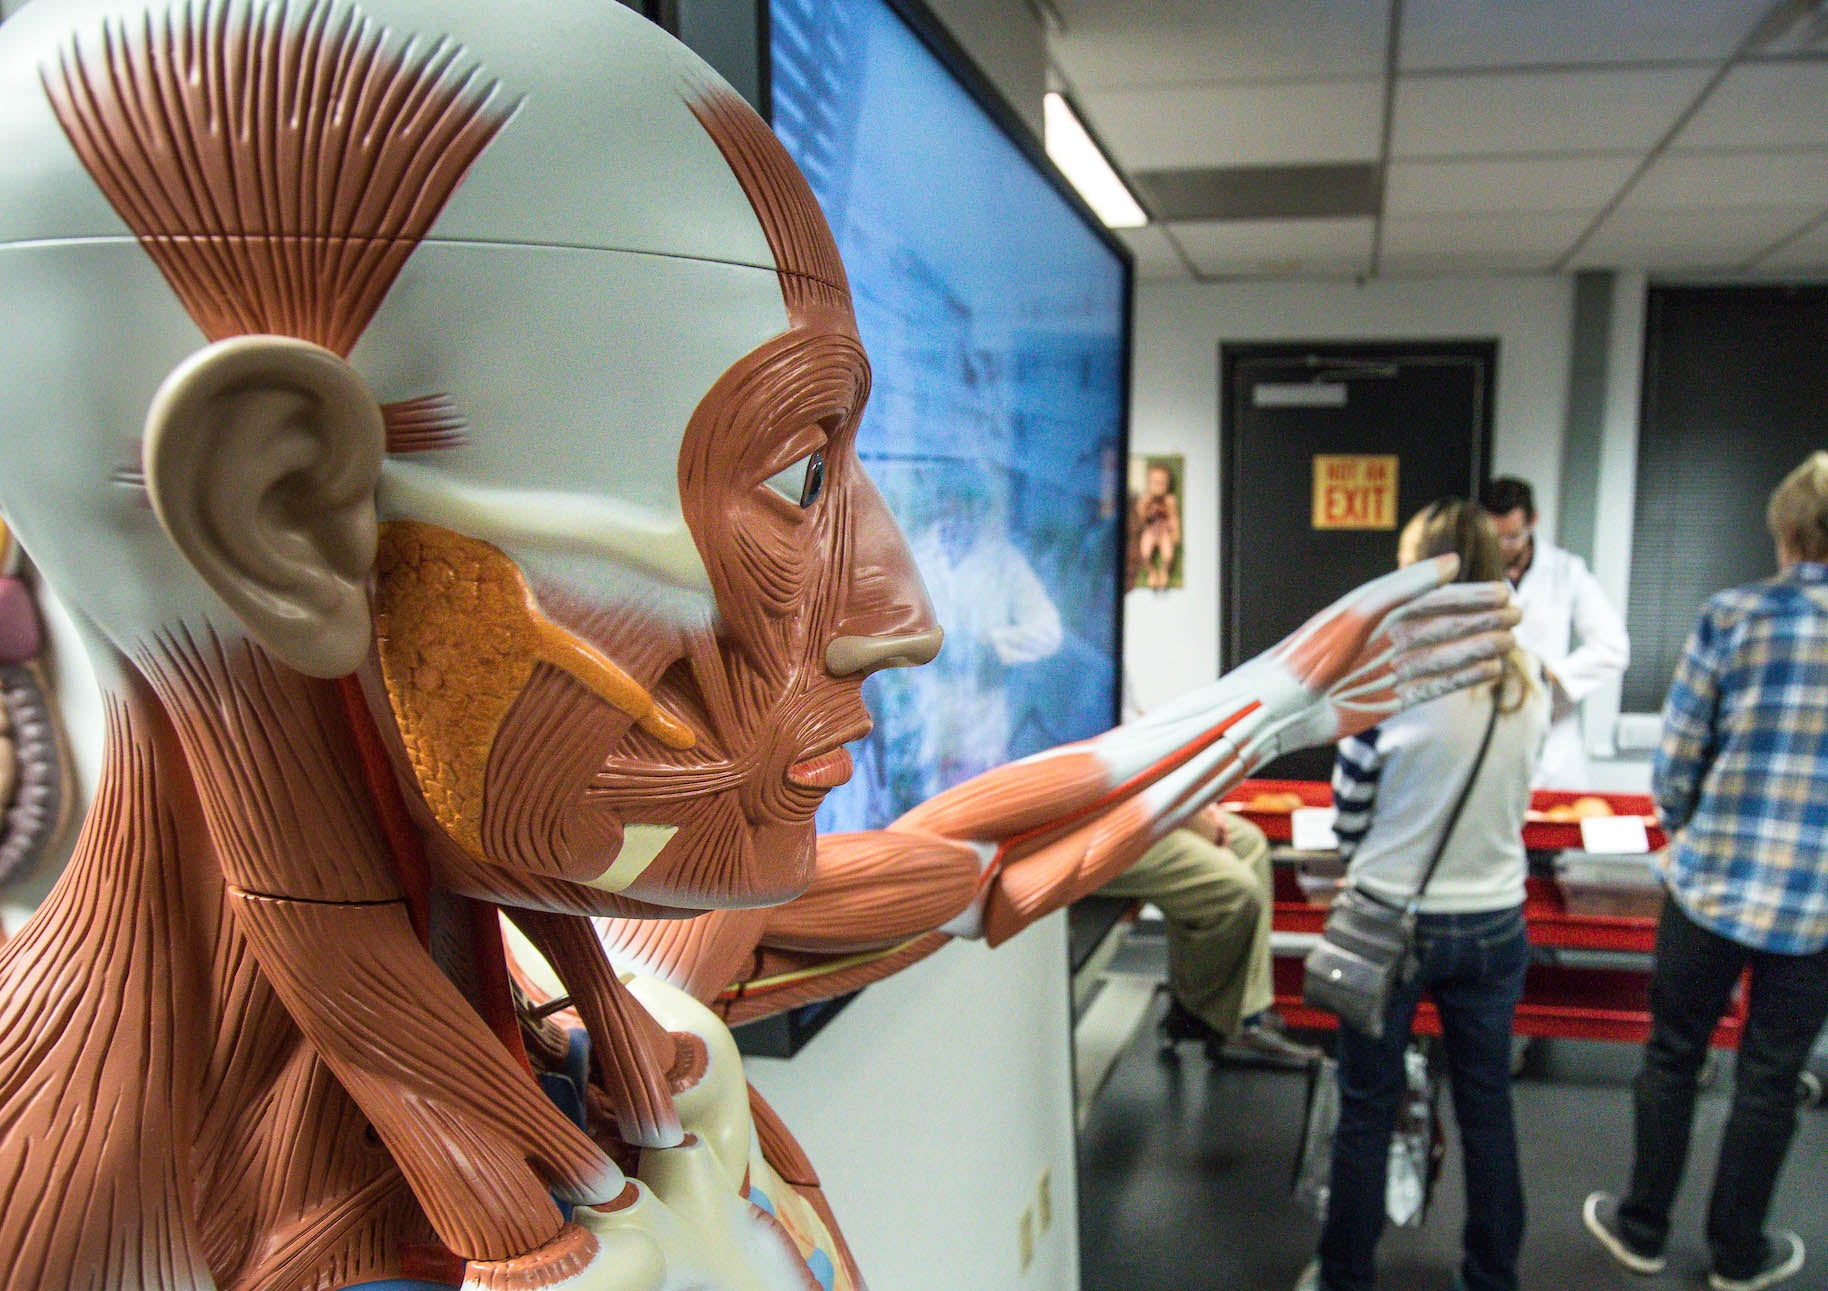 human anatomy model with outstretched arm in welcome